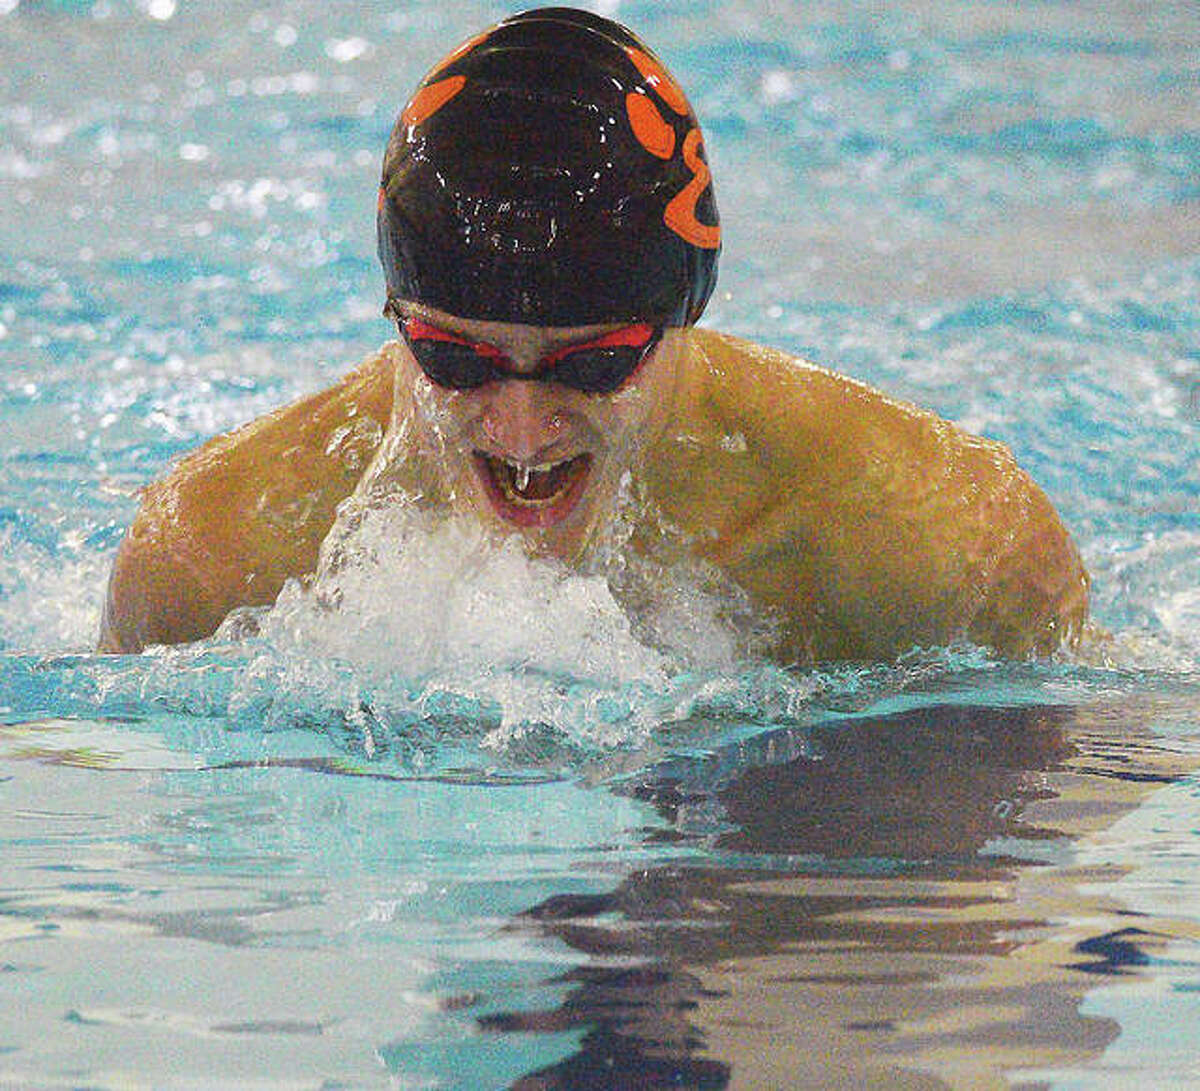 Edwardsville's Evan Grinter swims the breaststroke during a 2021 meet. Grinter is the 2021 Telegraph Boys Swimmer of the Year.